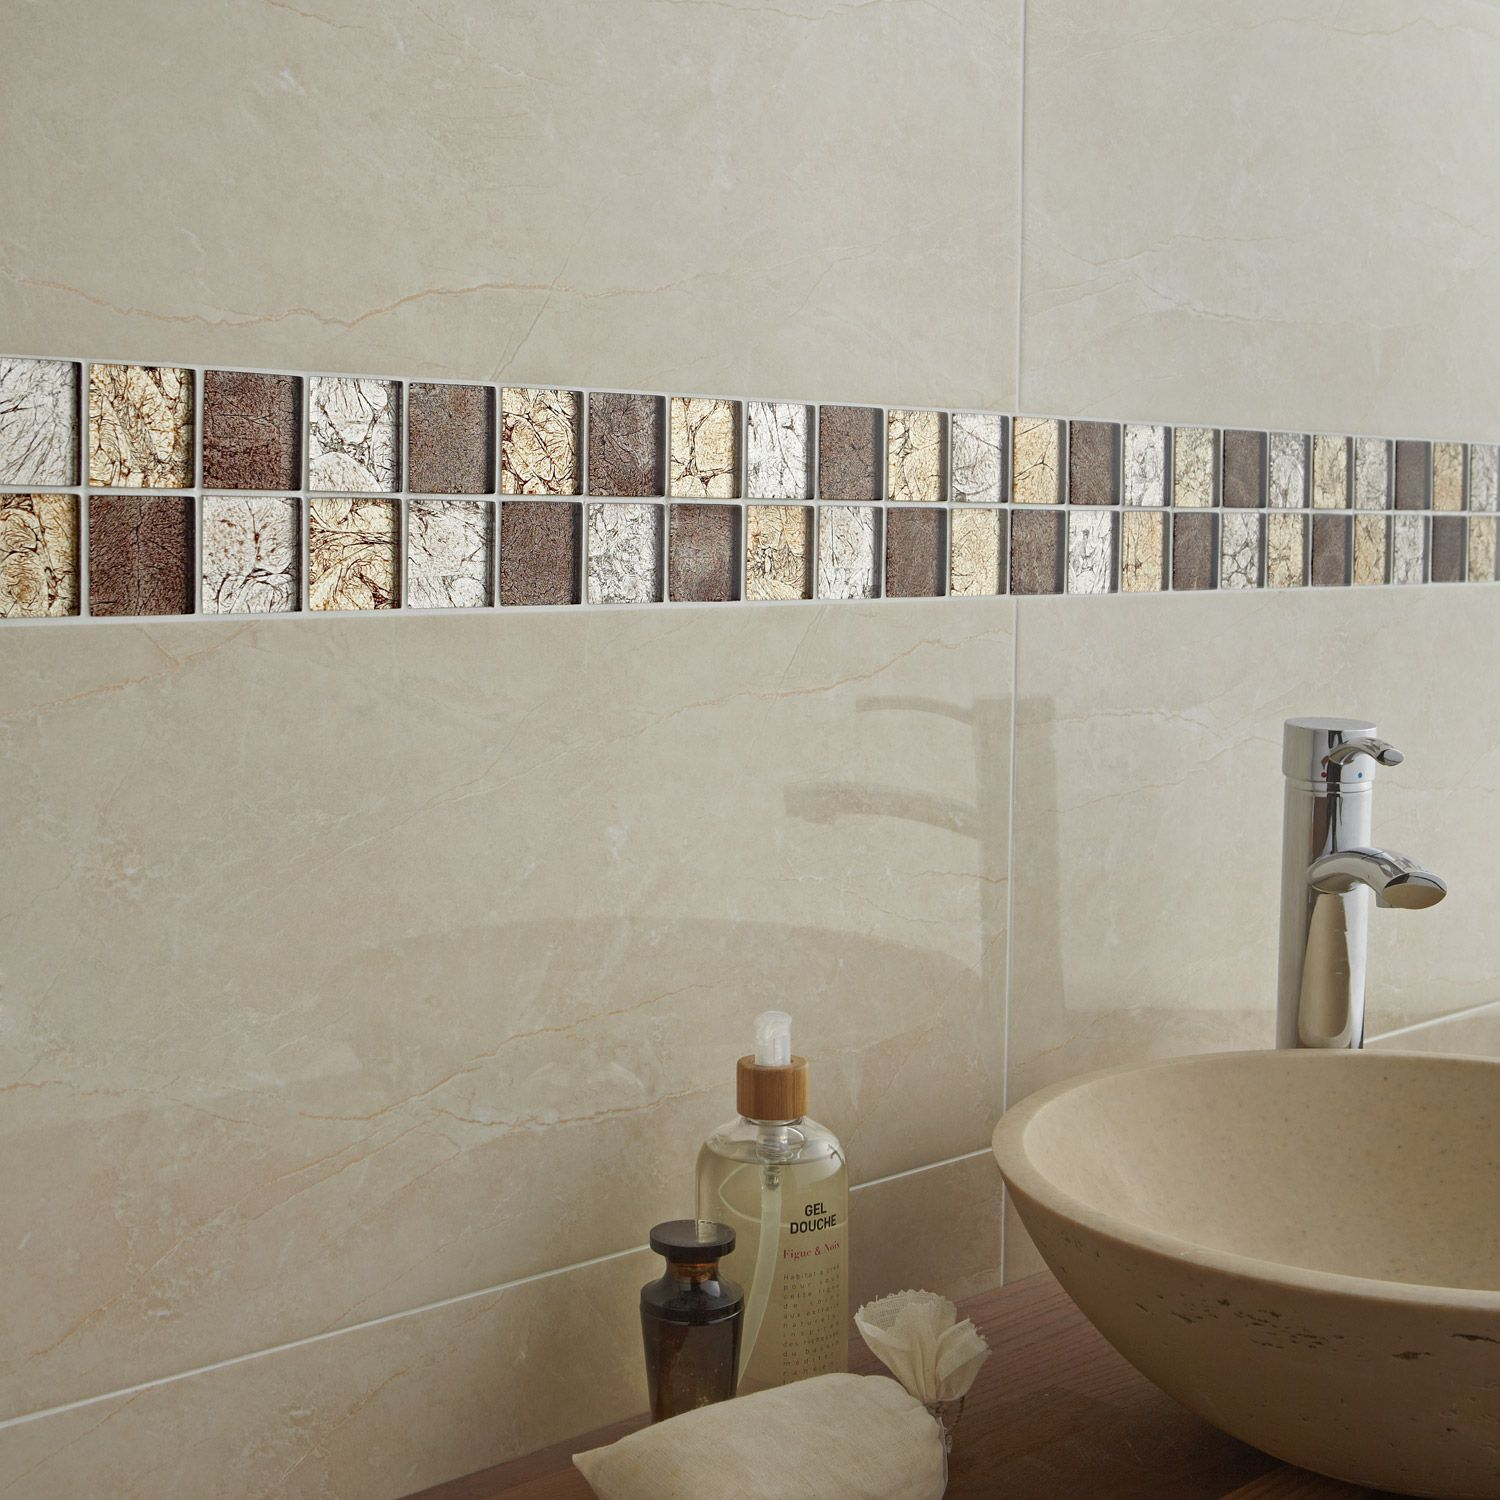 Mosa que glass select mix artens marron 5x5 cm leroy for What does salle de bain mean